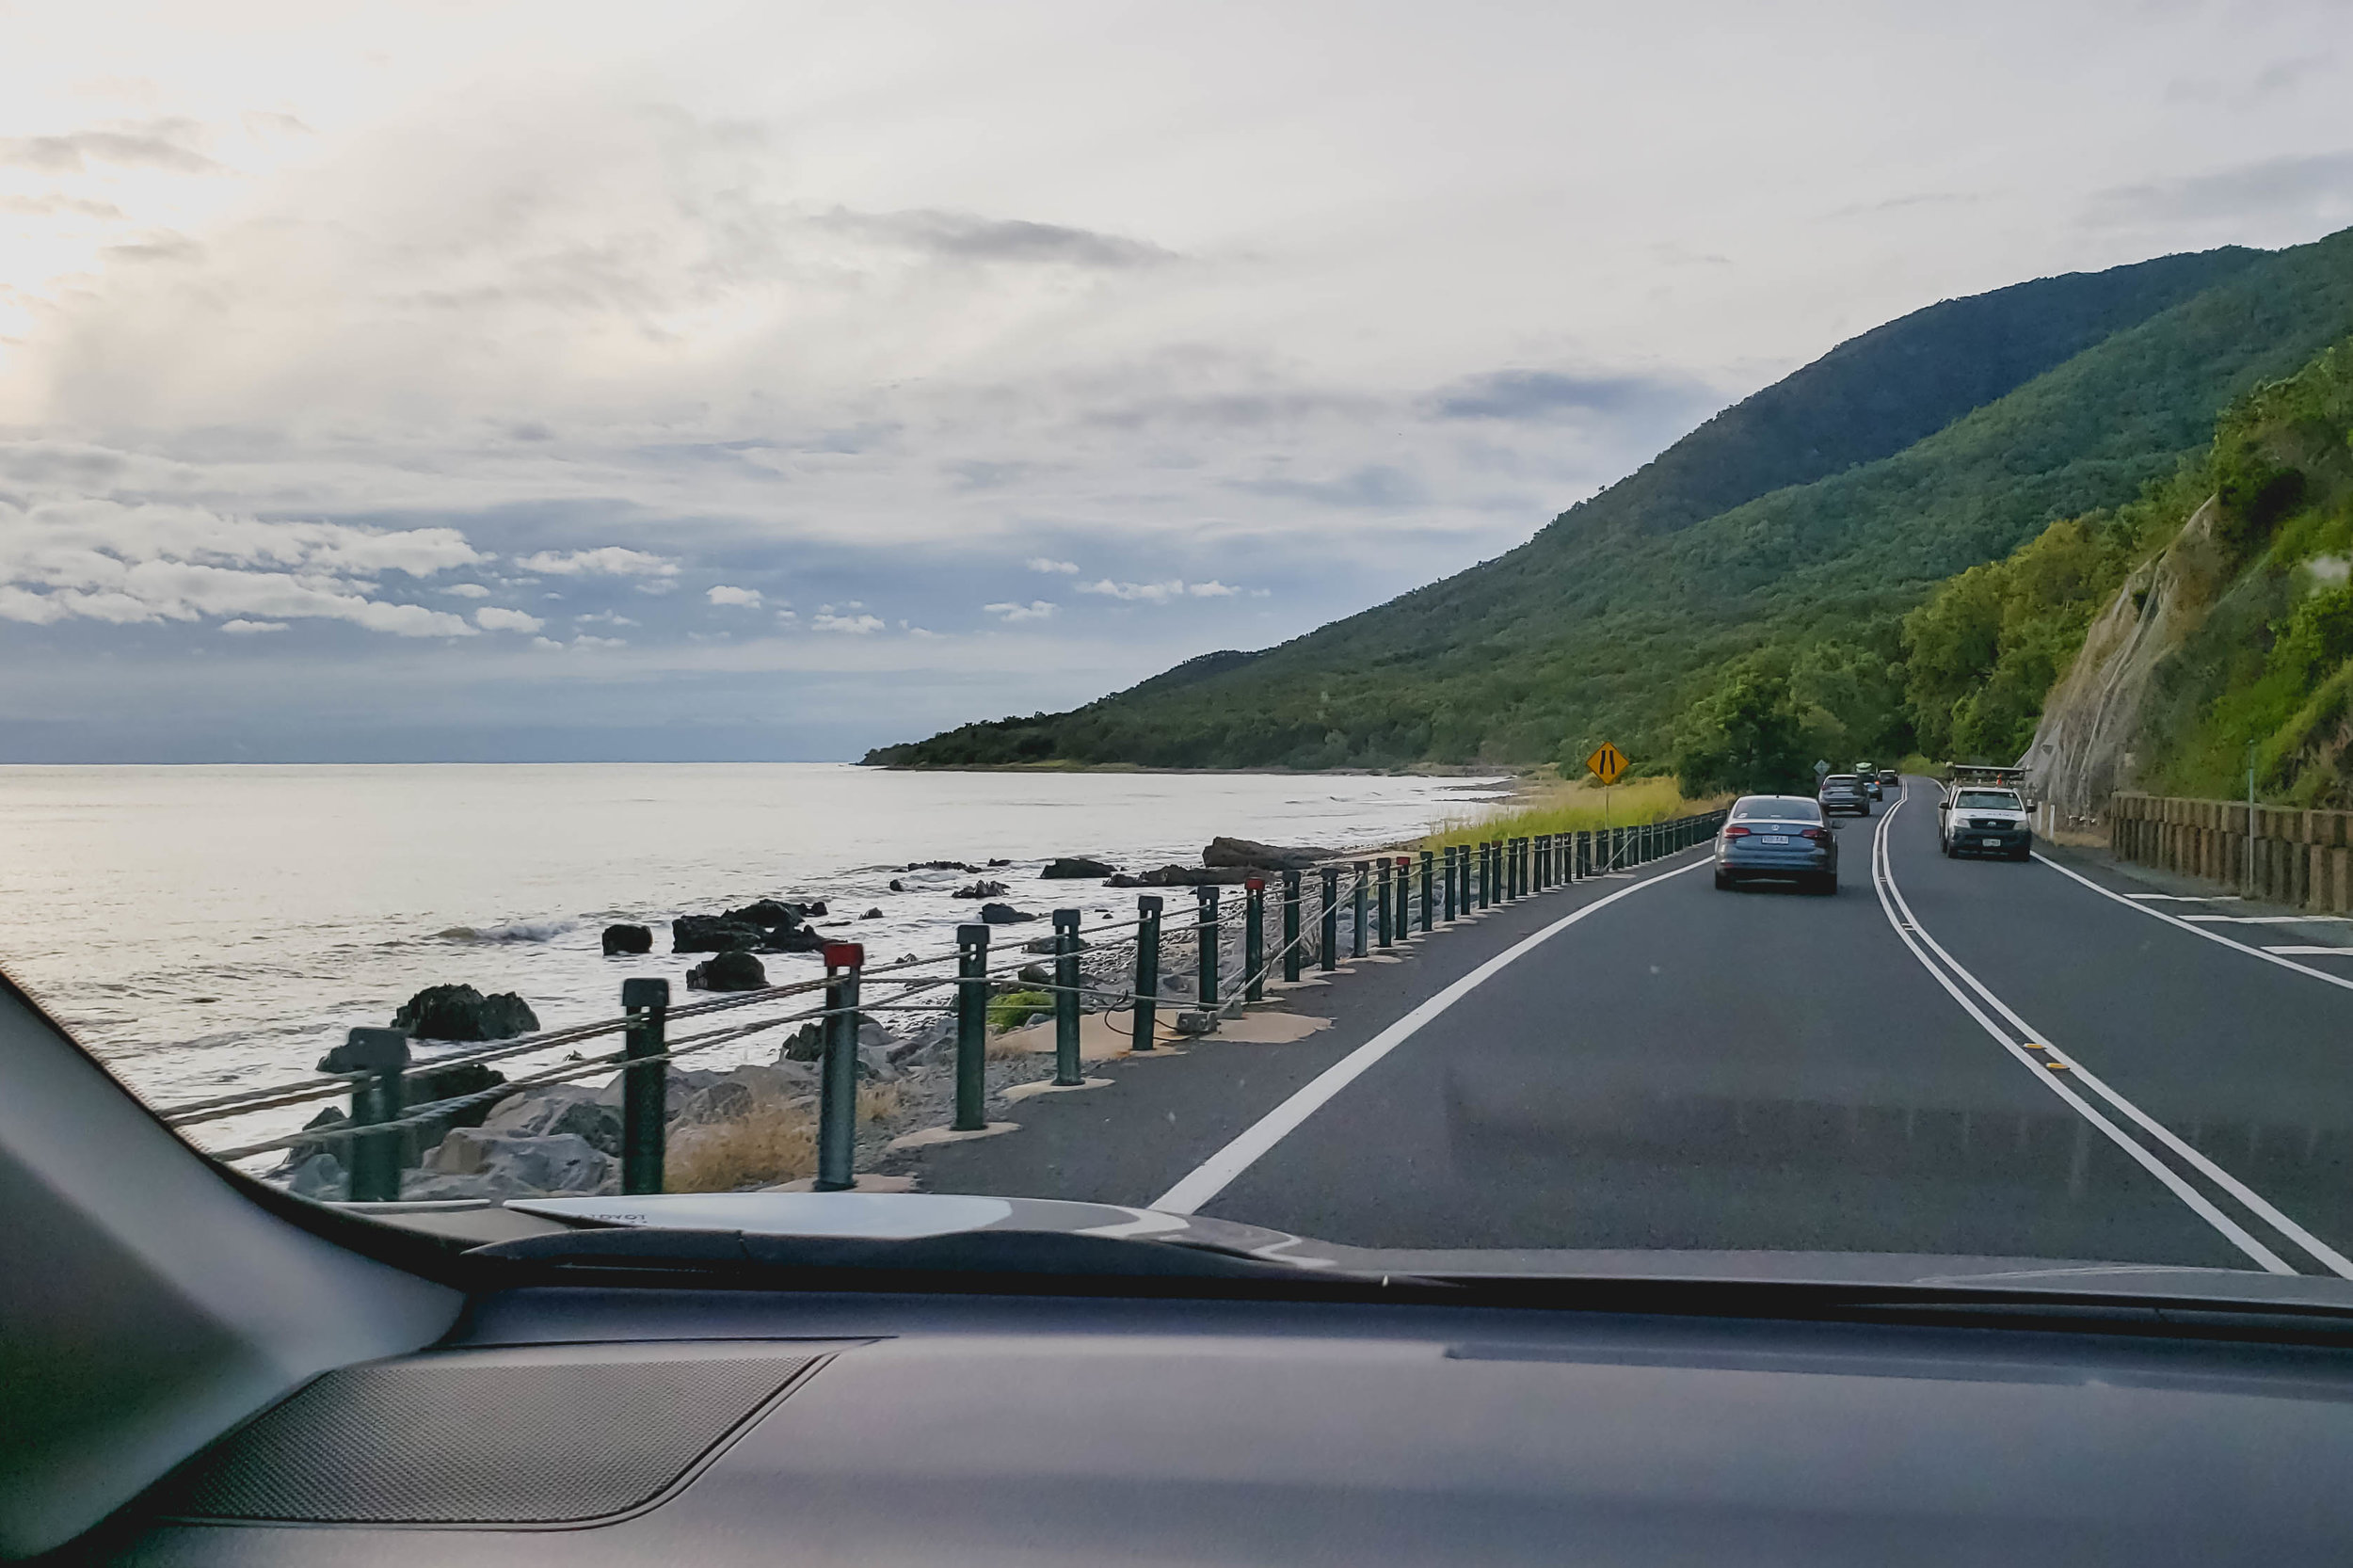 on the road from port douglas to cairns.